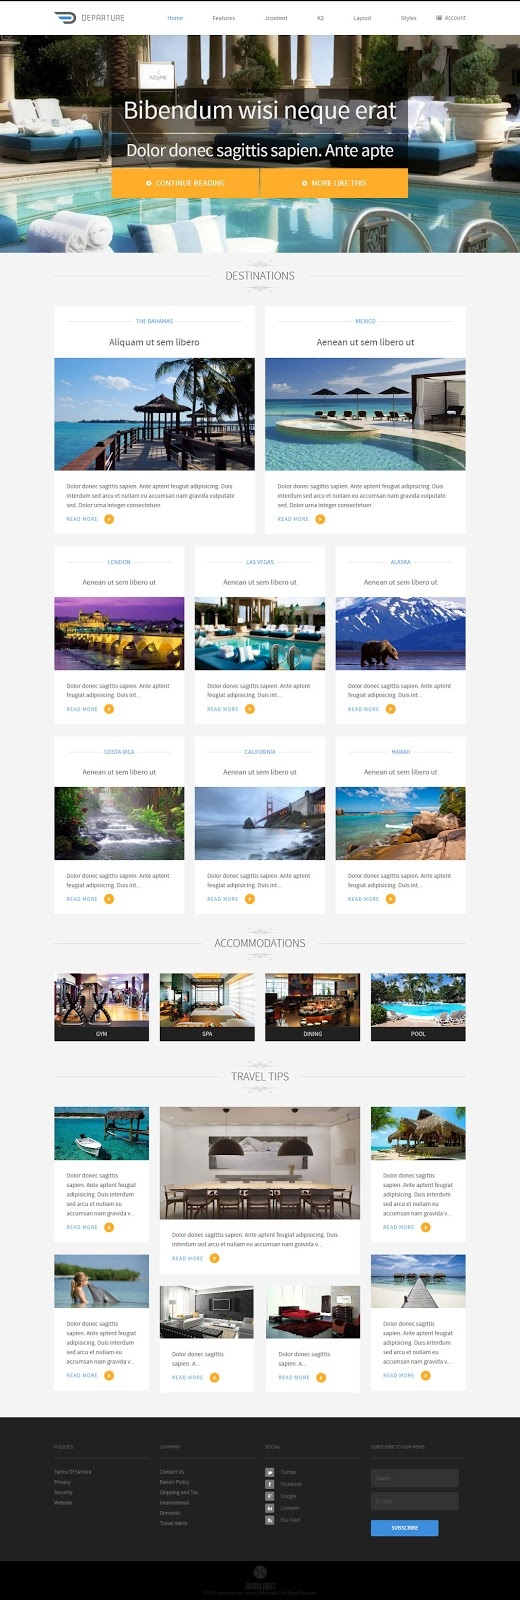 Departure is a full Travel Agency based website for Joomla 2.5 and 3.0. Designed with the latest in Flat Design and Powered by Joomla Content and K2, Departure is more than just a template! Enhanced with Bootstrap CSS3, Departure scales to pixel perfect widths to enhance viewing on Large Format Monitors, Tablets, Phones, and mobile devices!